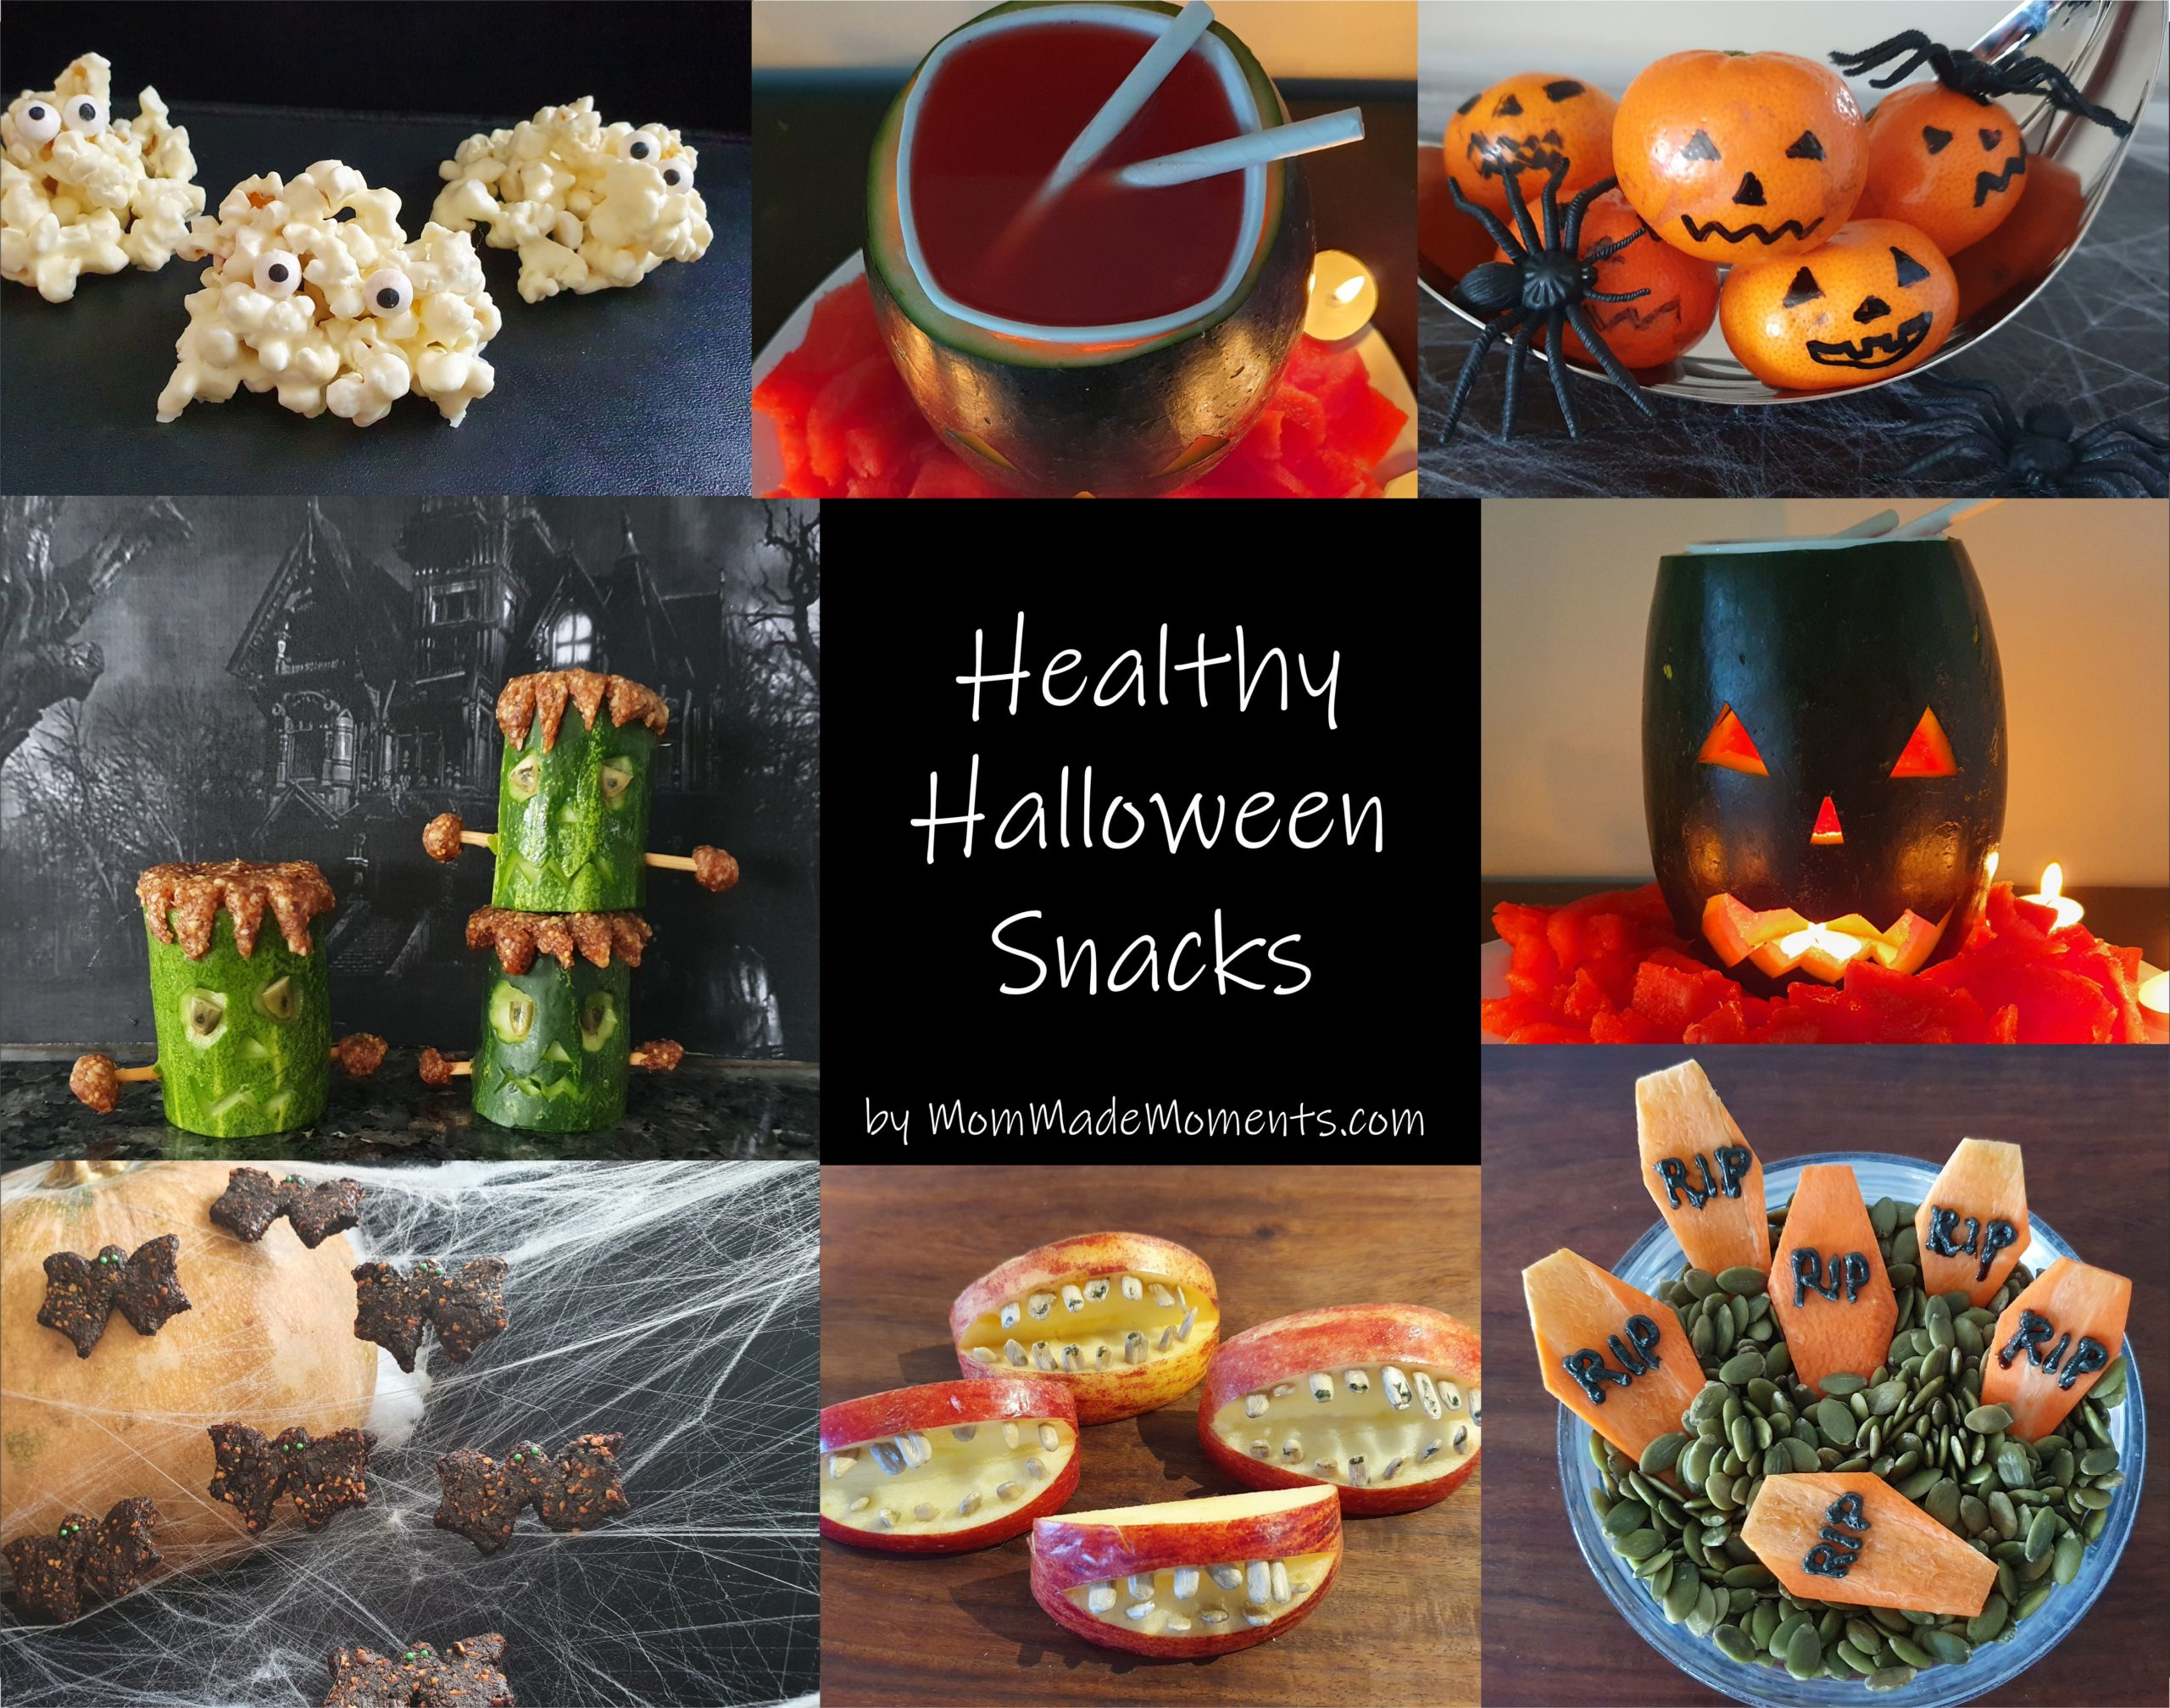 Healthy Halloween Snacks MomMadeMoments